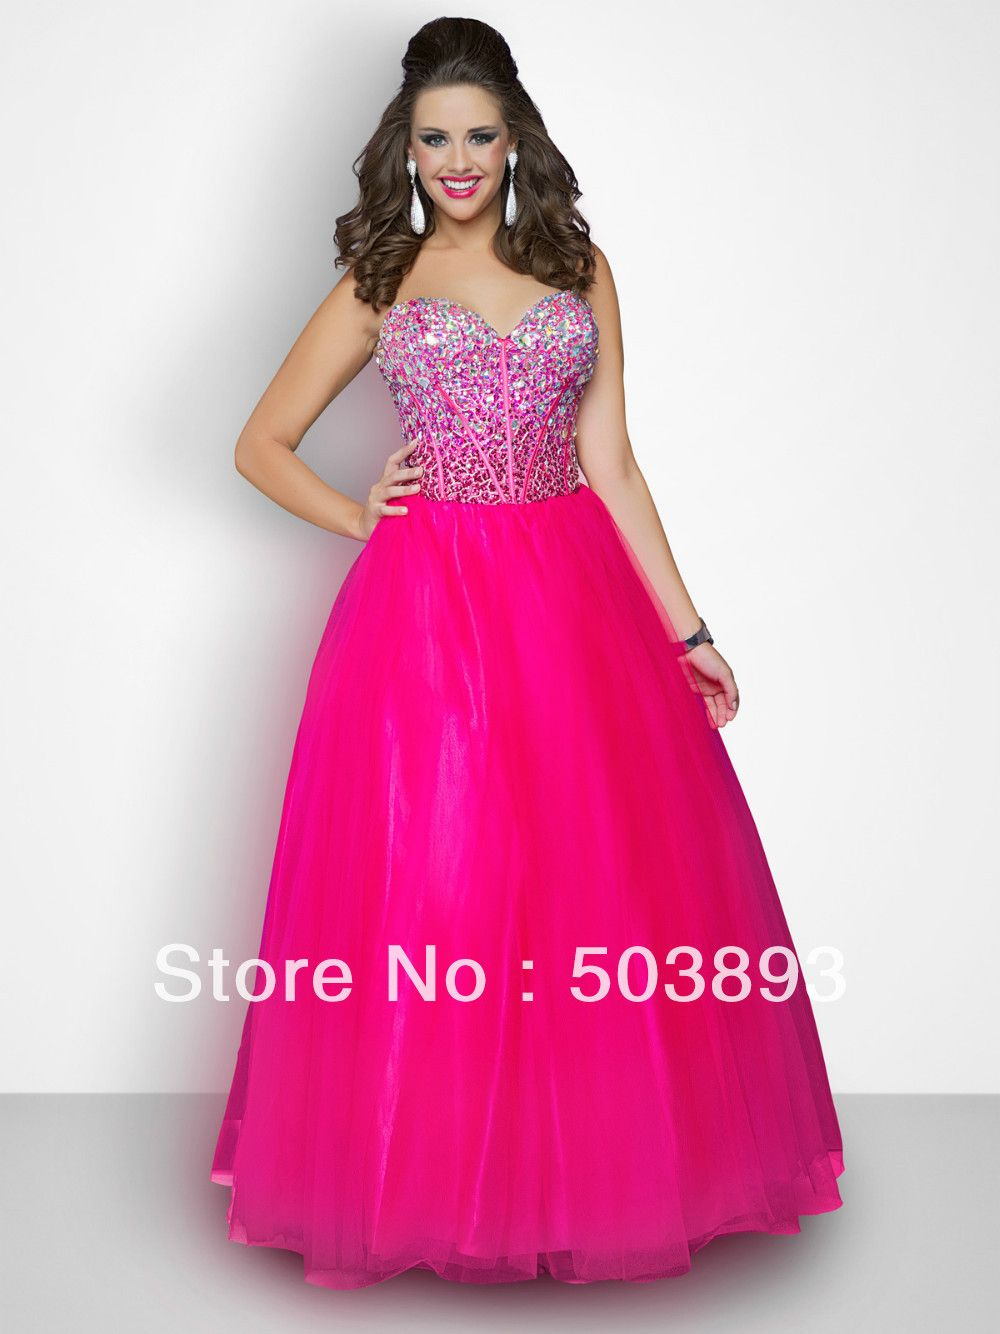 Sexy Girls In Prom Dresses Shipping Hot Pink Plus Size Prom